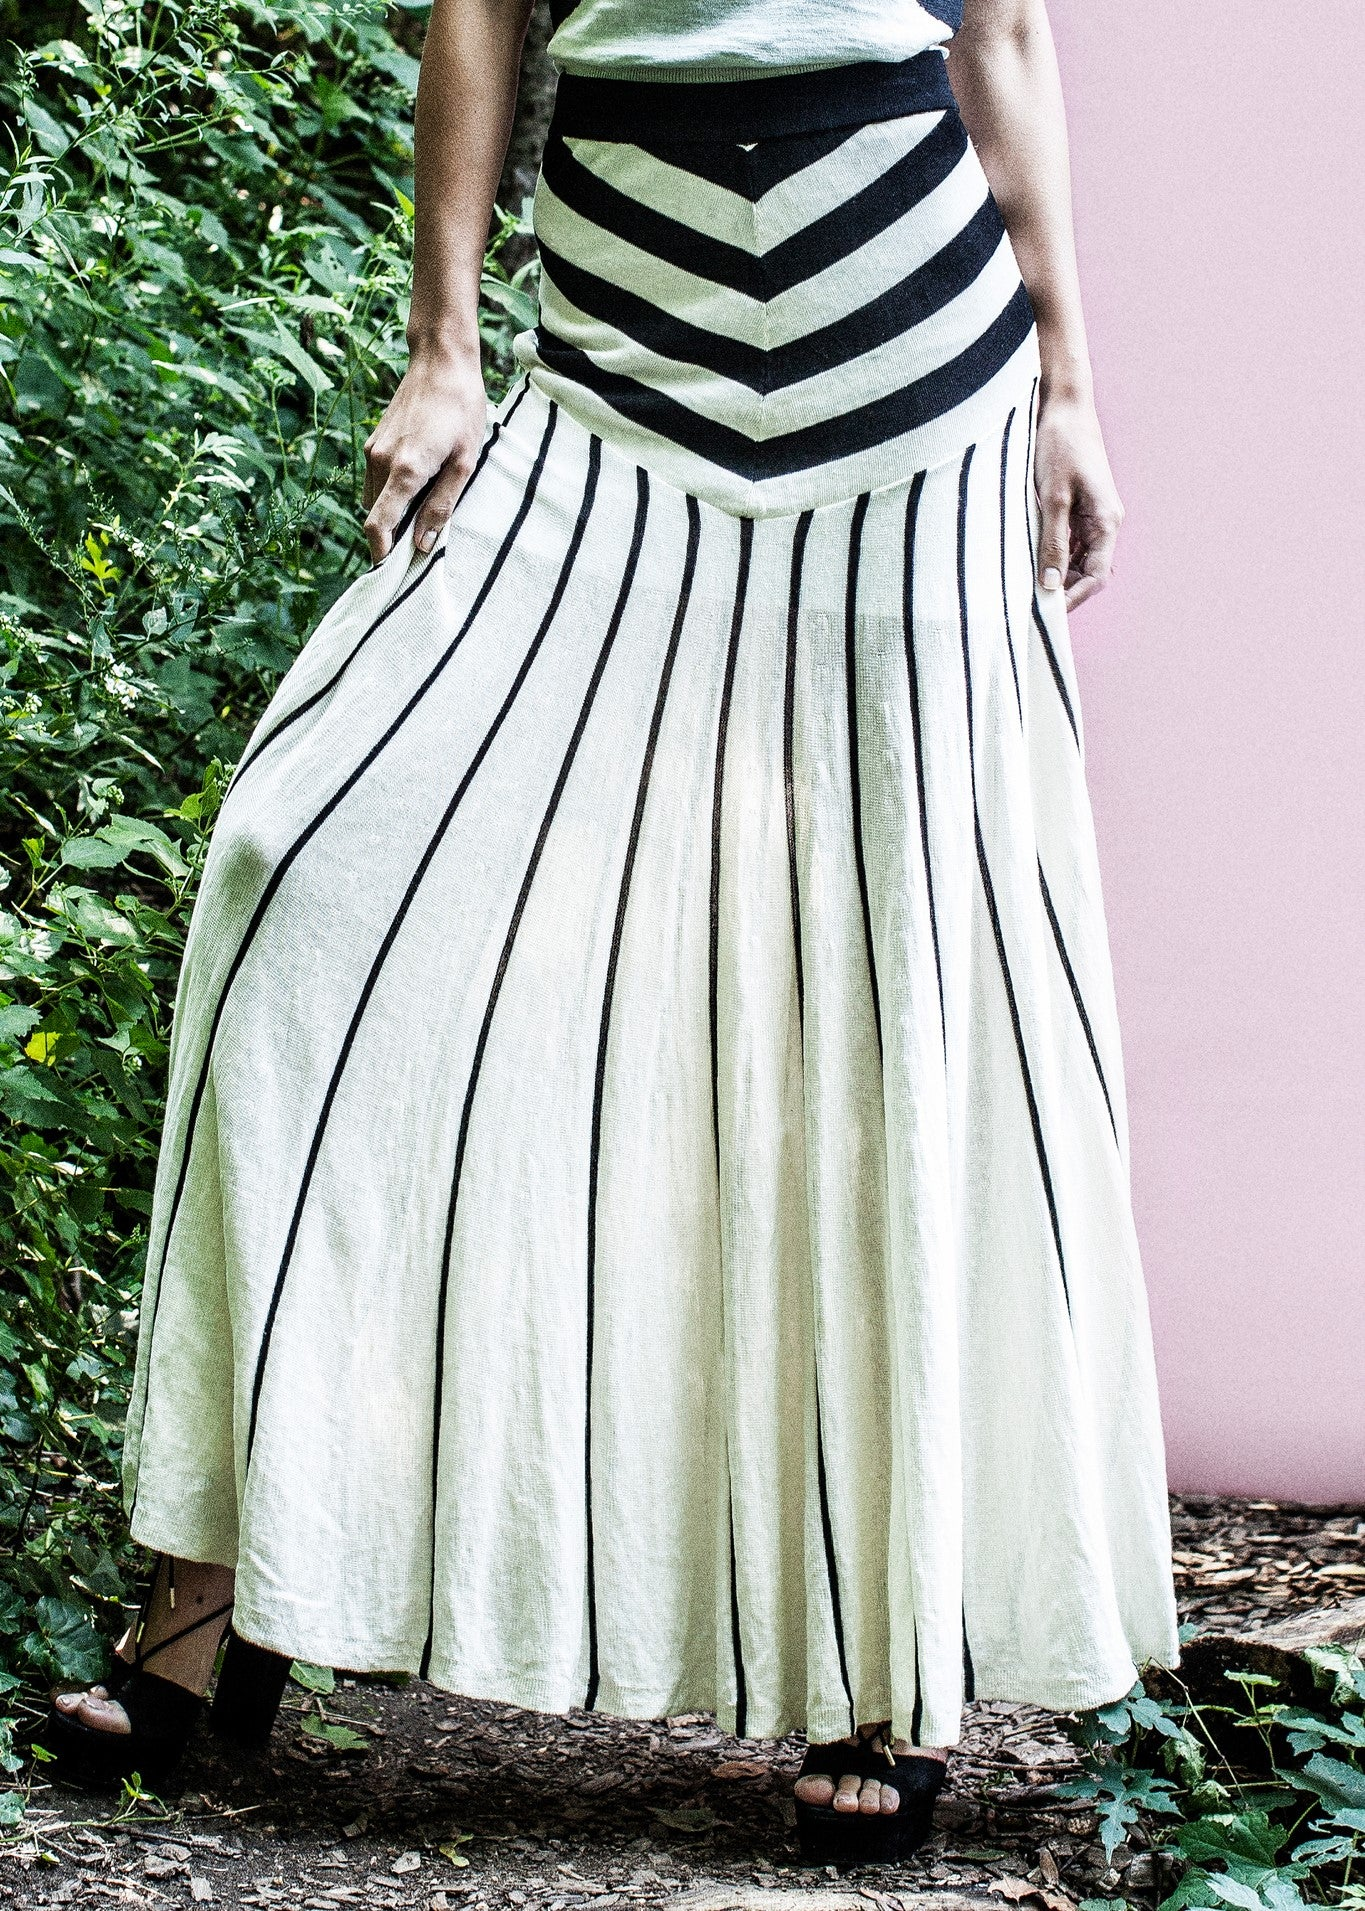 Tabula Rasa malick stripe skirt black white